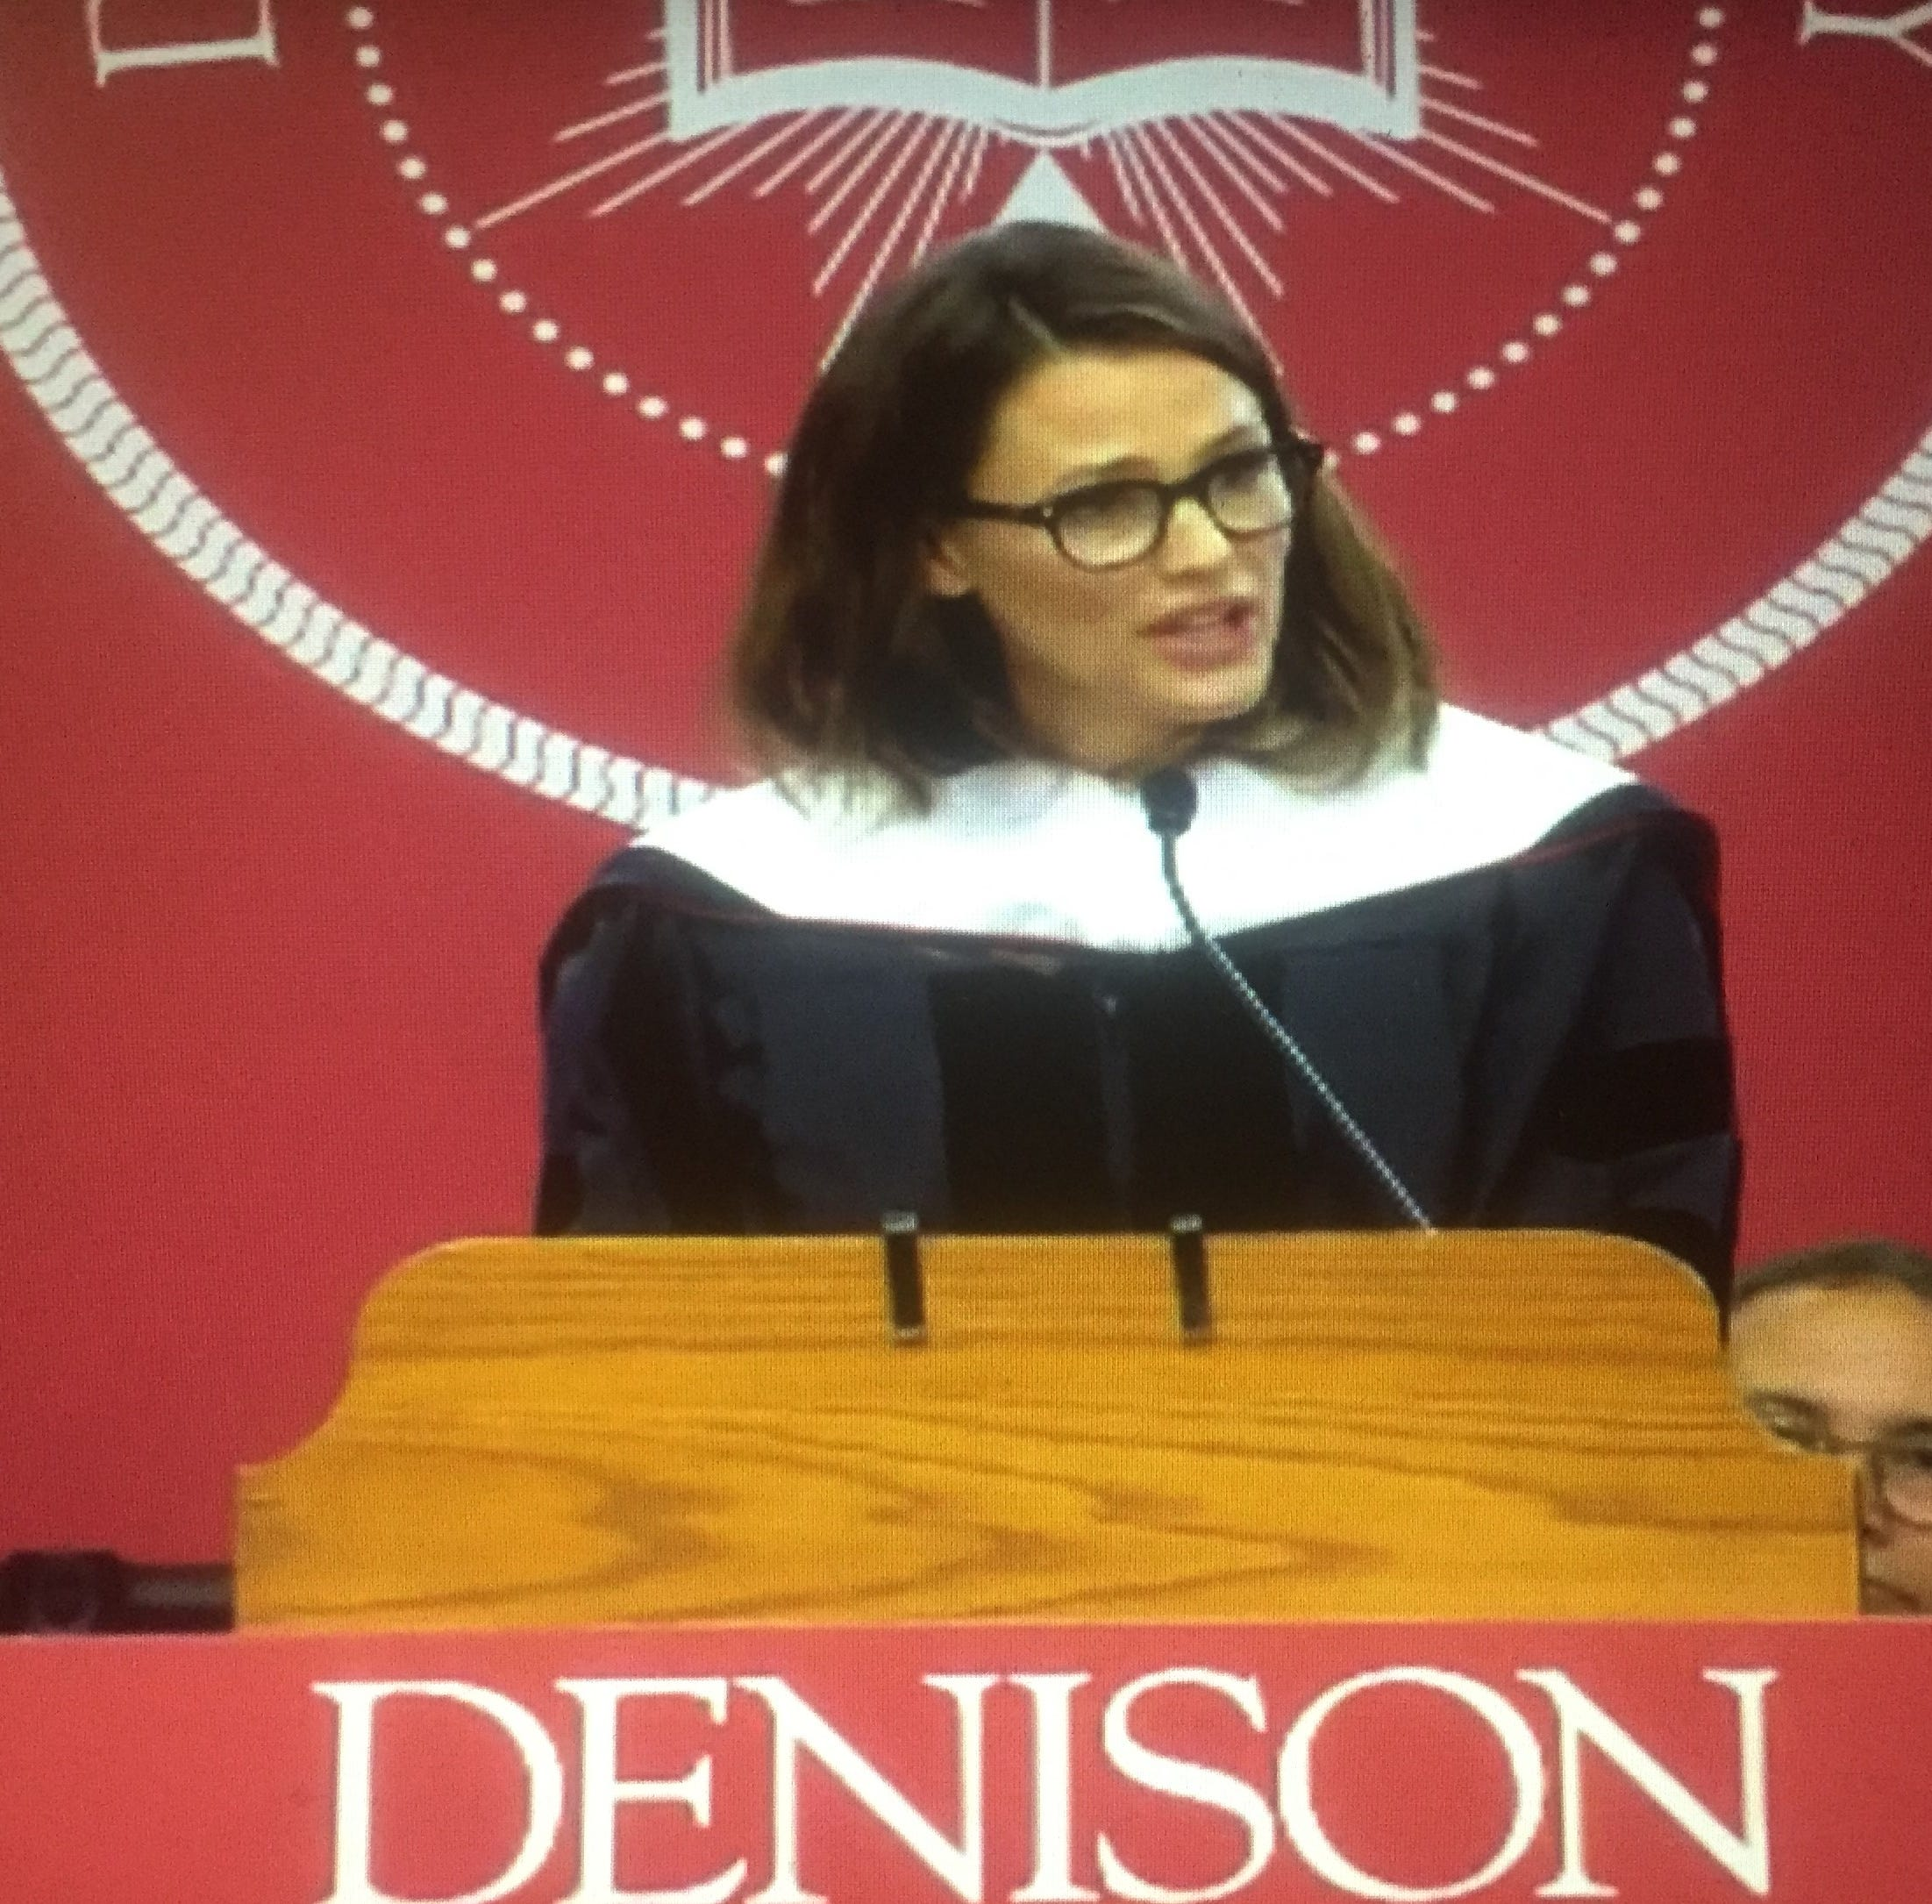 Jennifer Garner to Denison grads: 'You're responsible for your own happiness'